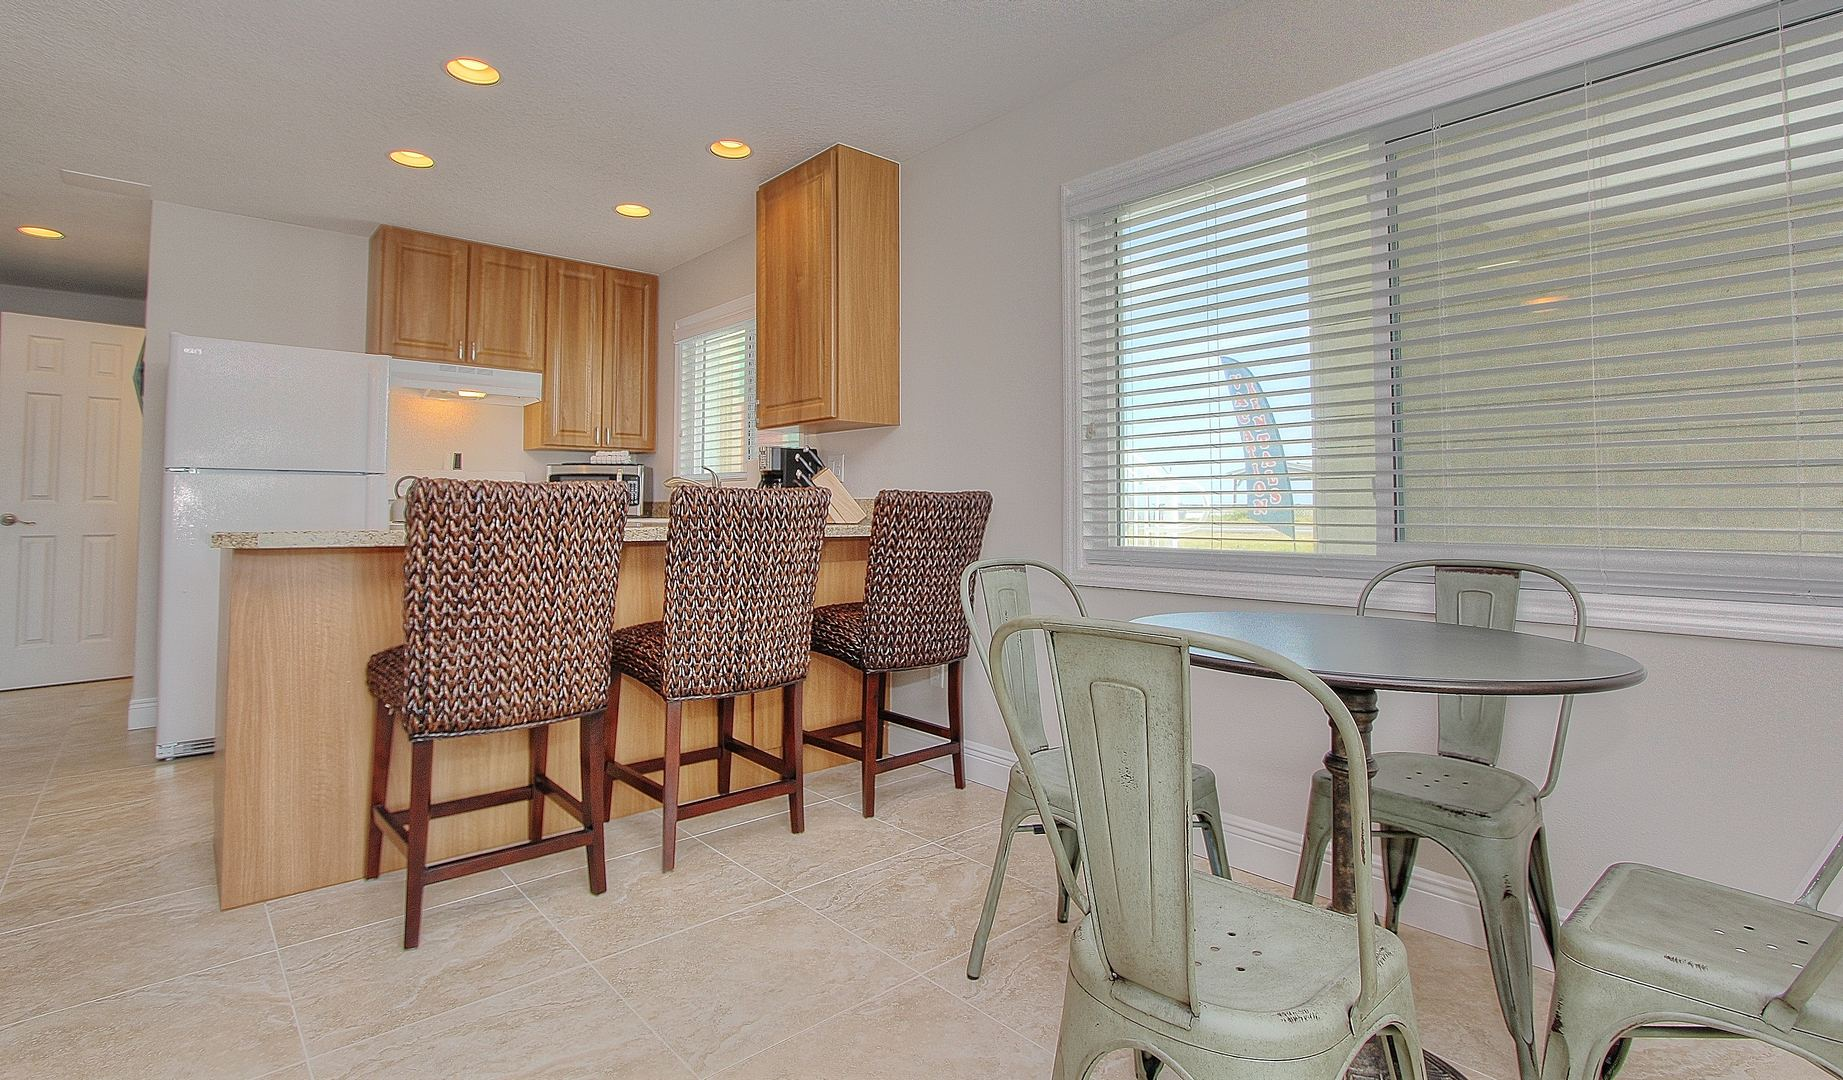 Kitchen Chairs W/ Dining Table